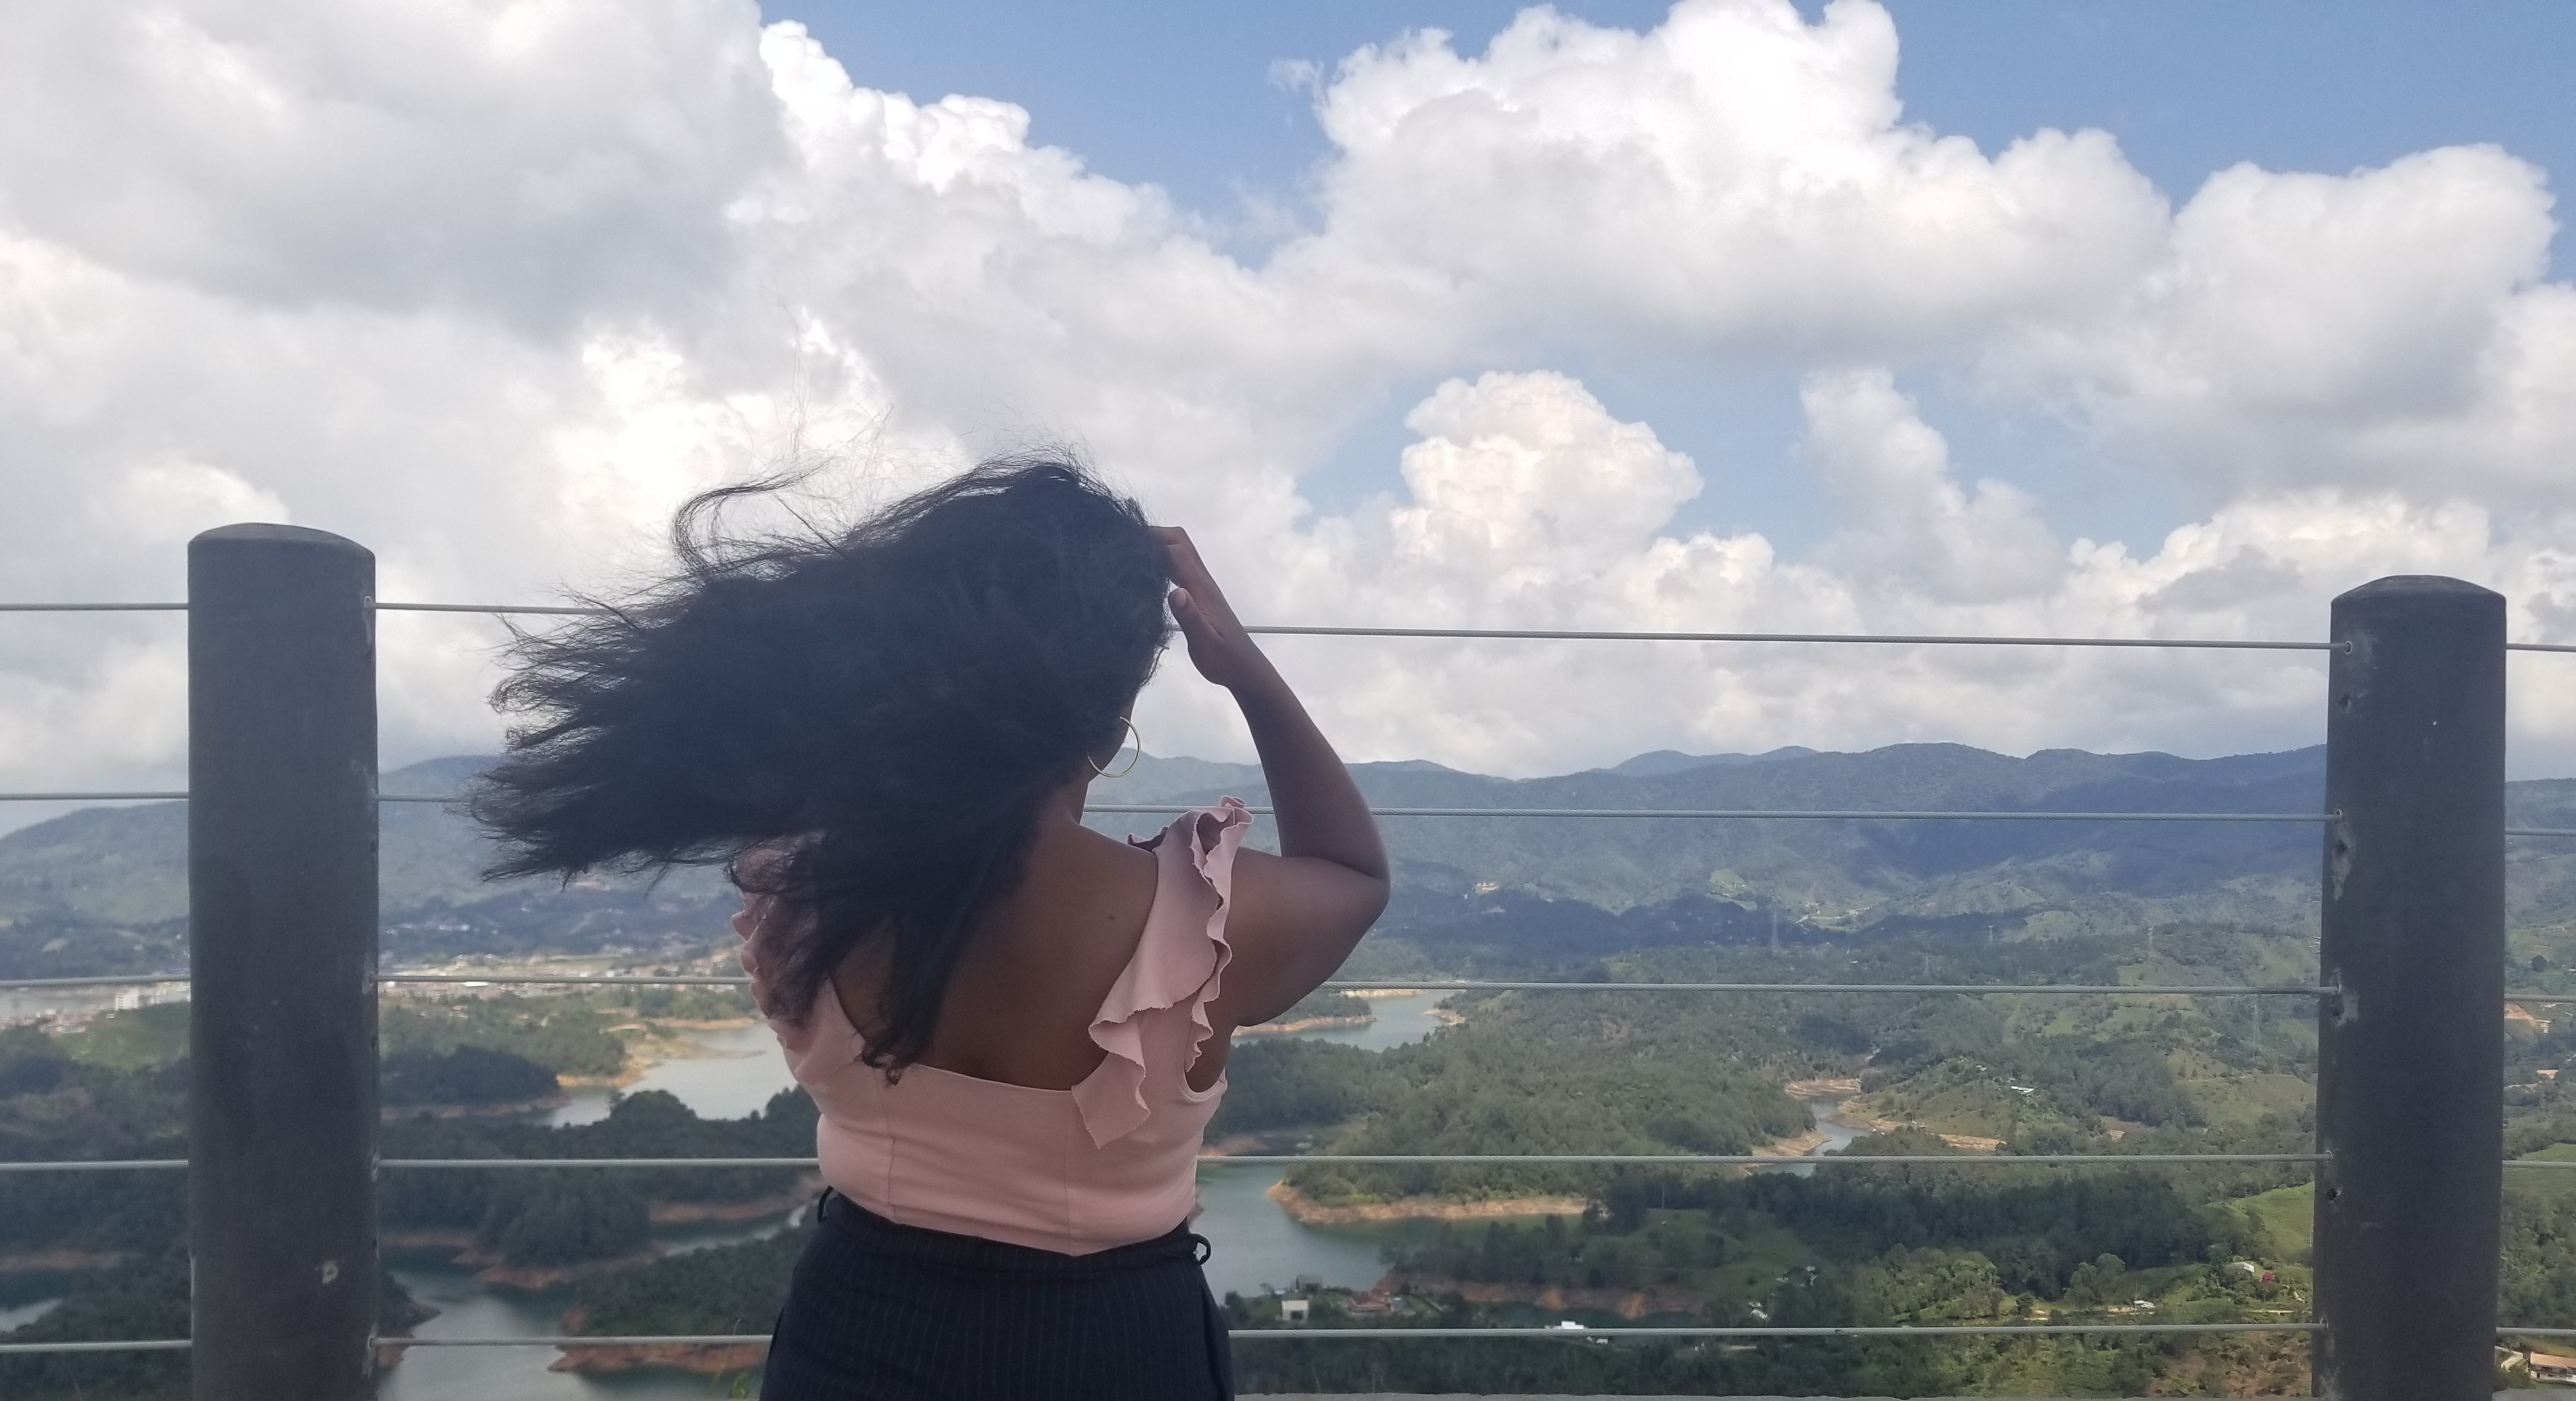 Enjoying the view from the top of El Penol, also known as La Piedra, in Guatape, Colombia.